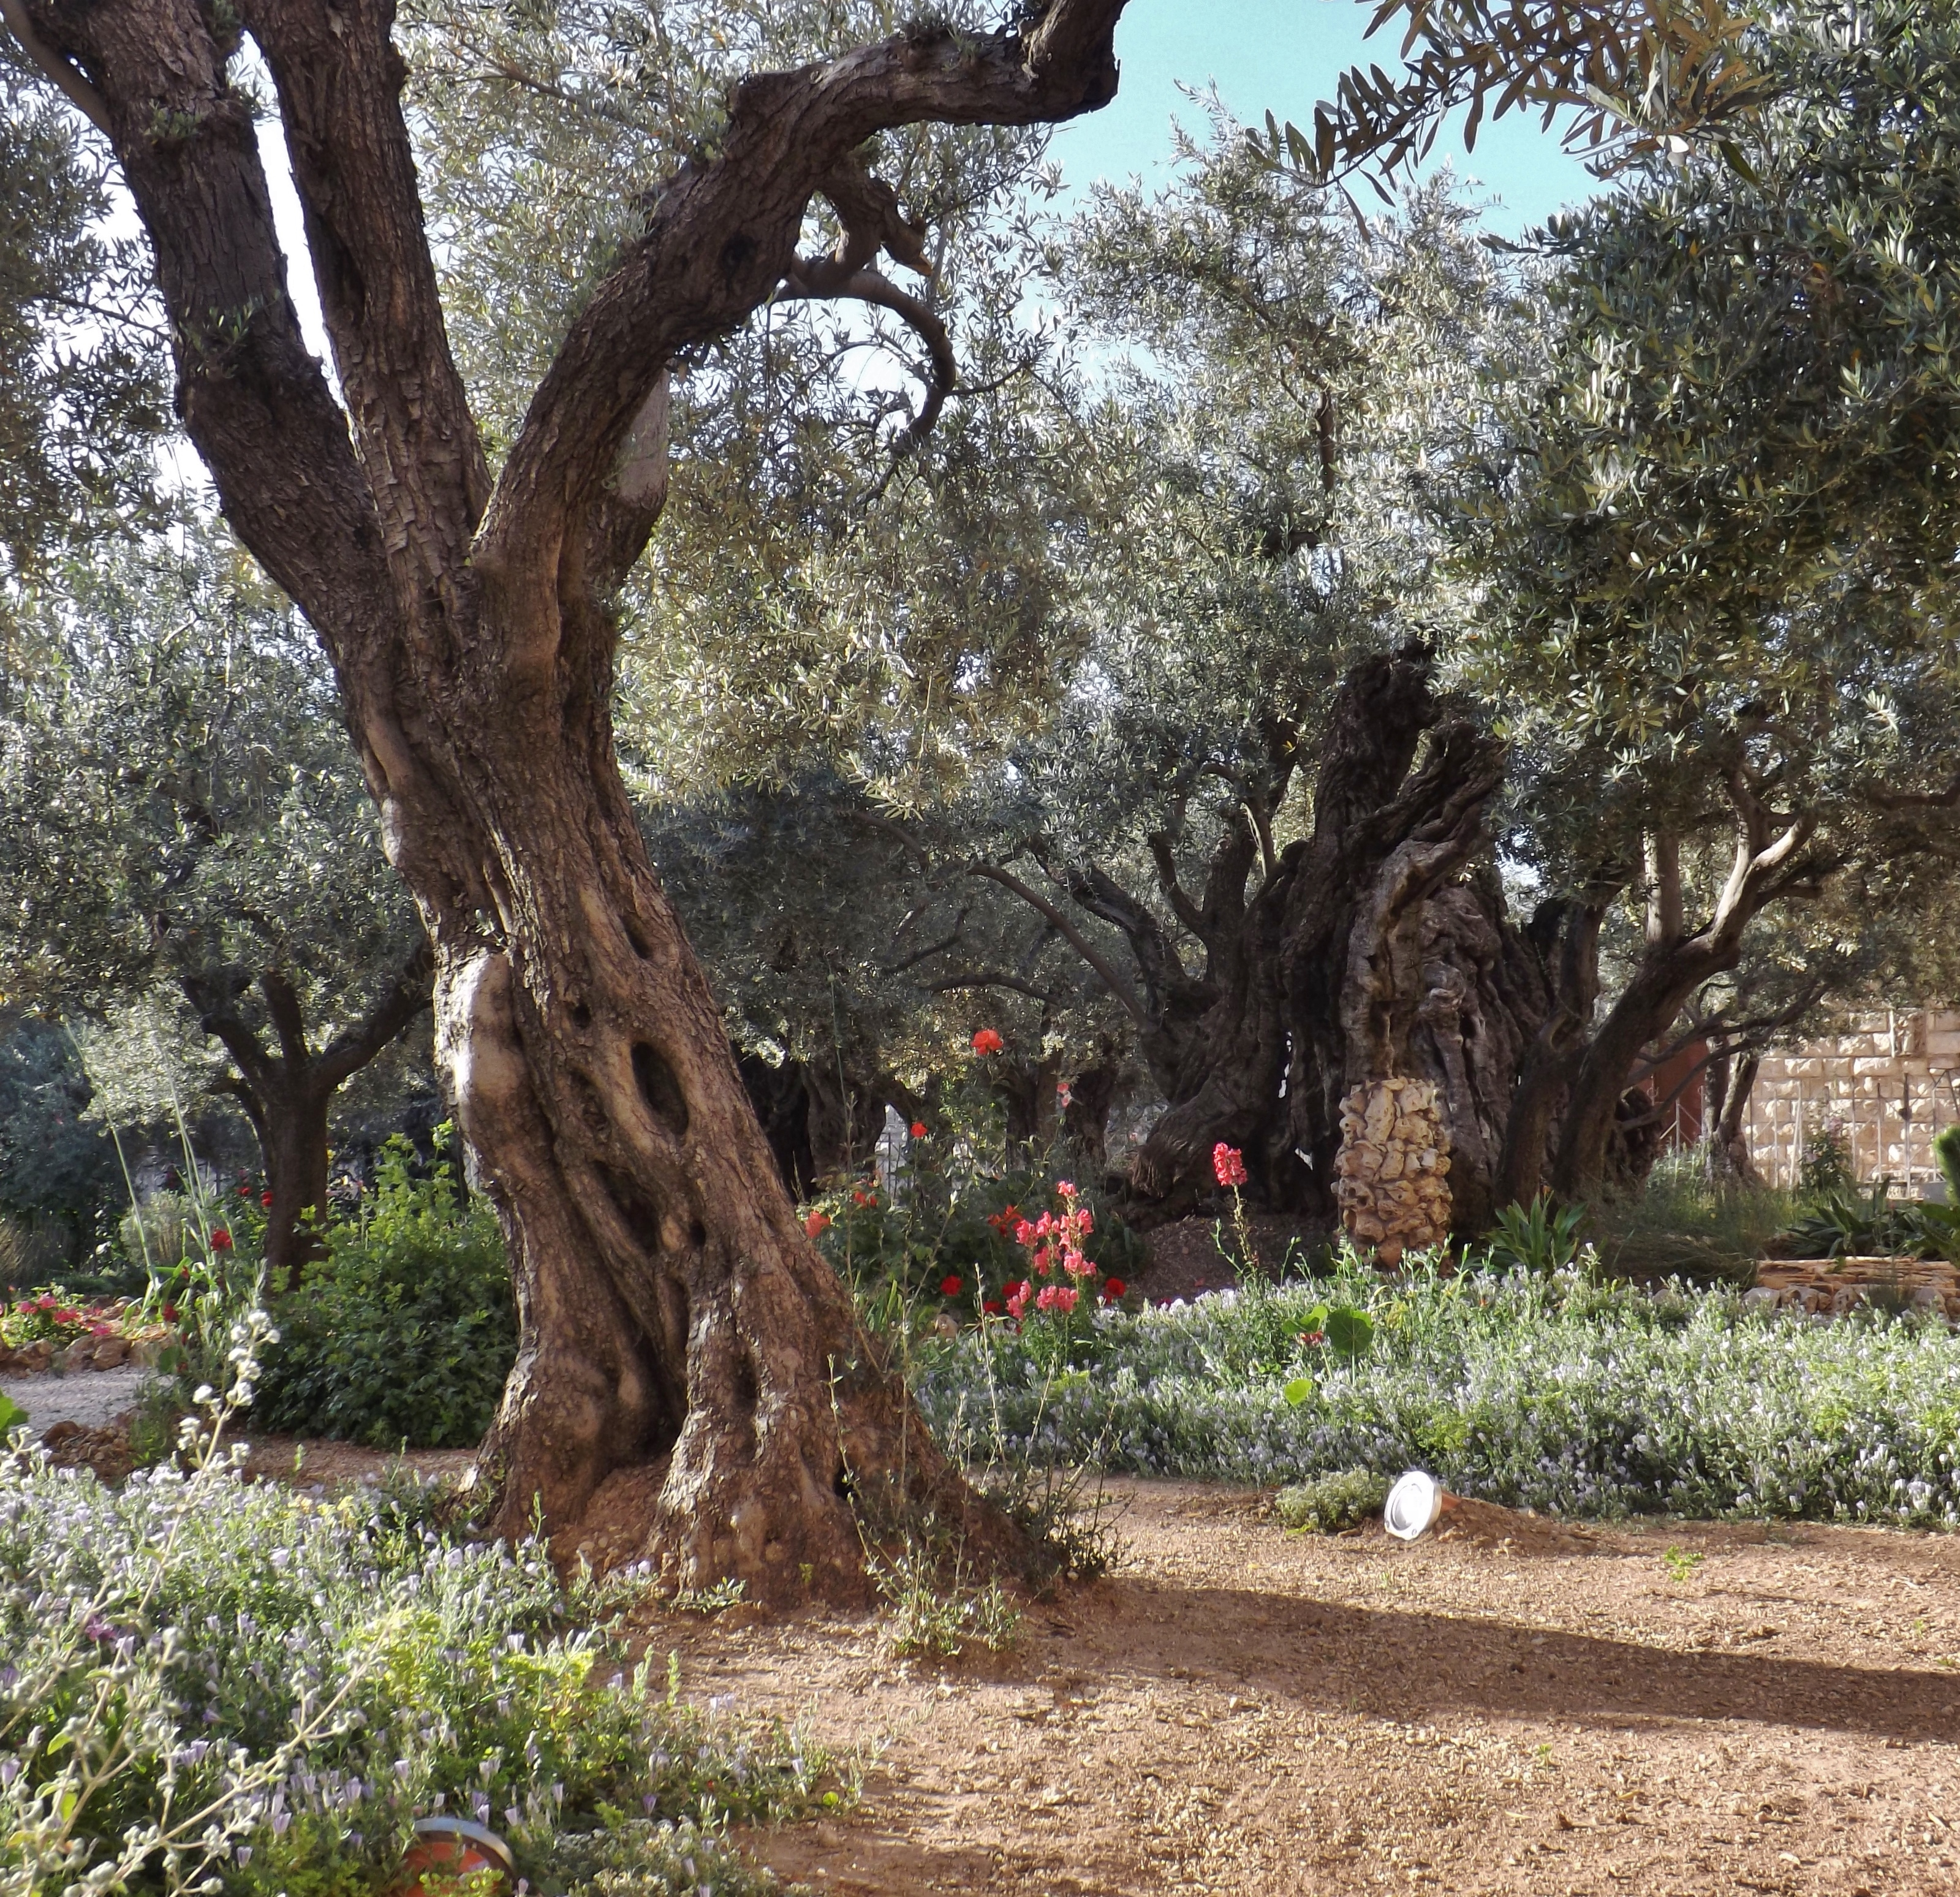 FileThe Garden of Gethsemane 17552757119jpg Wikimedia Commons